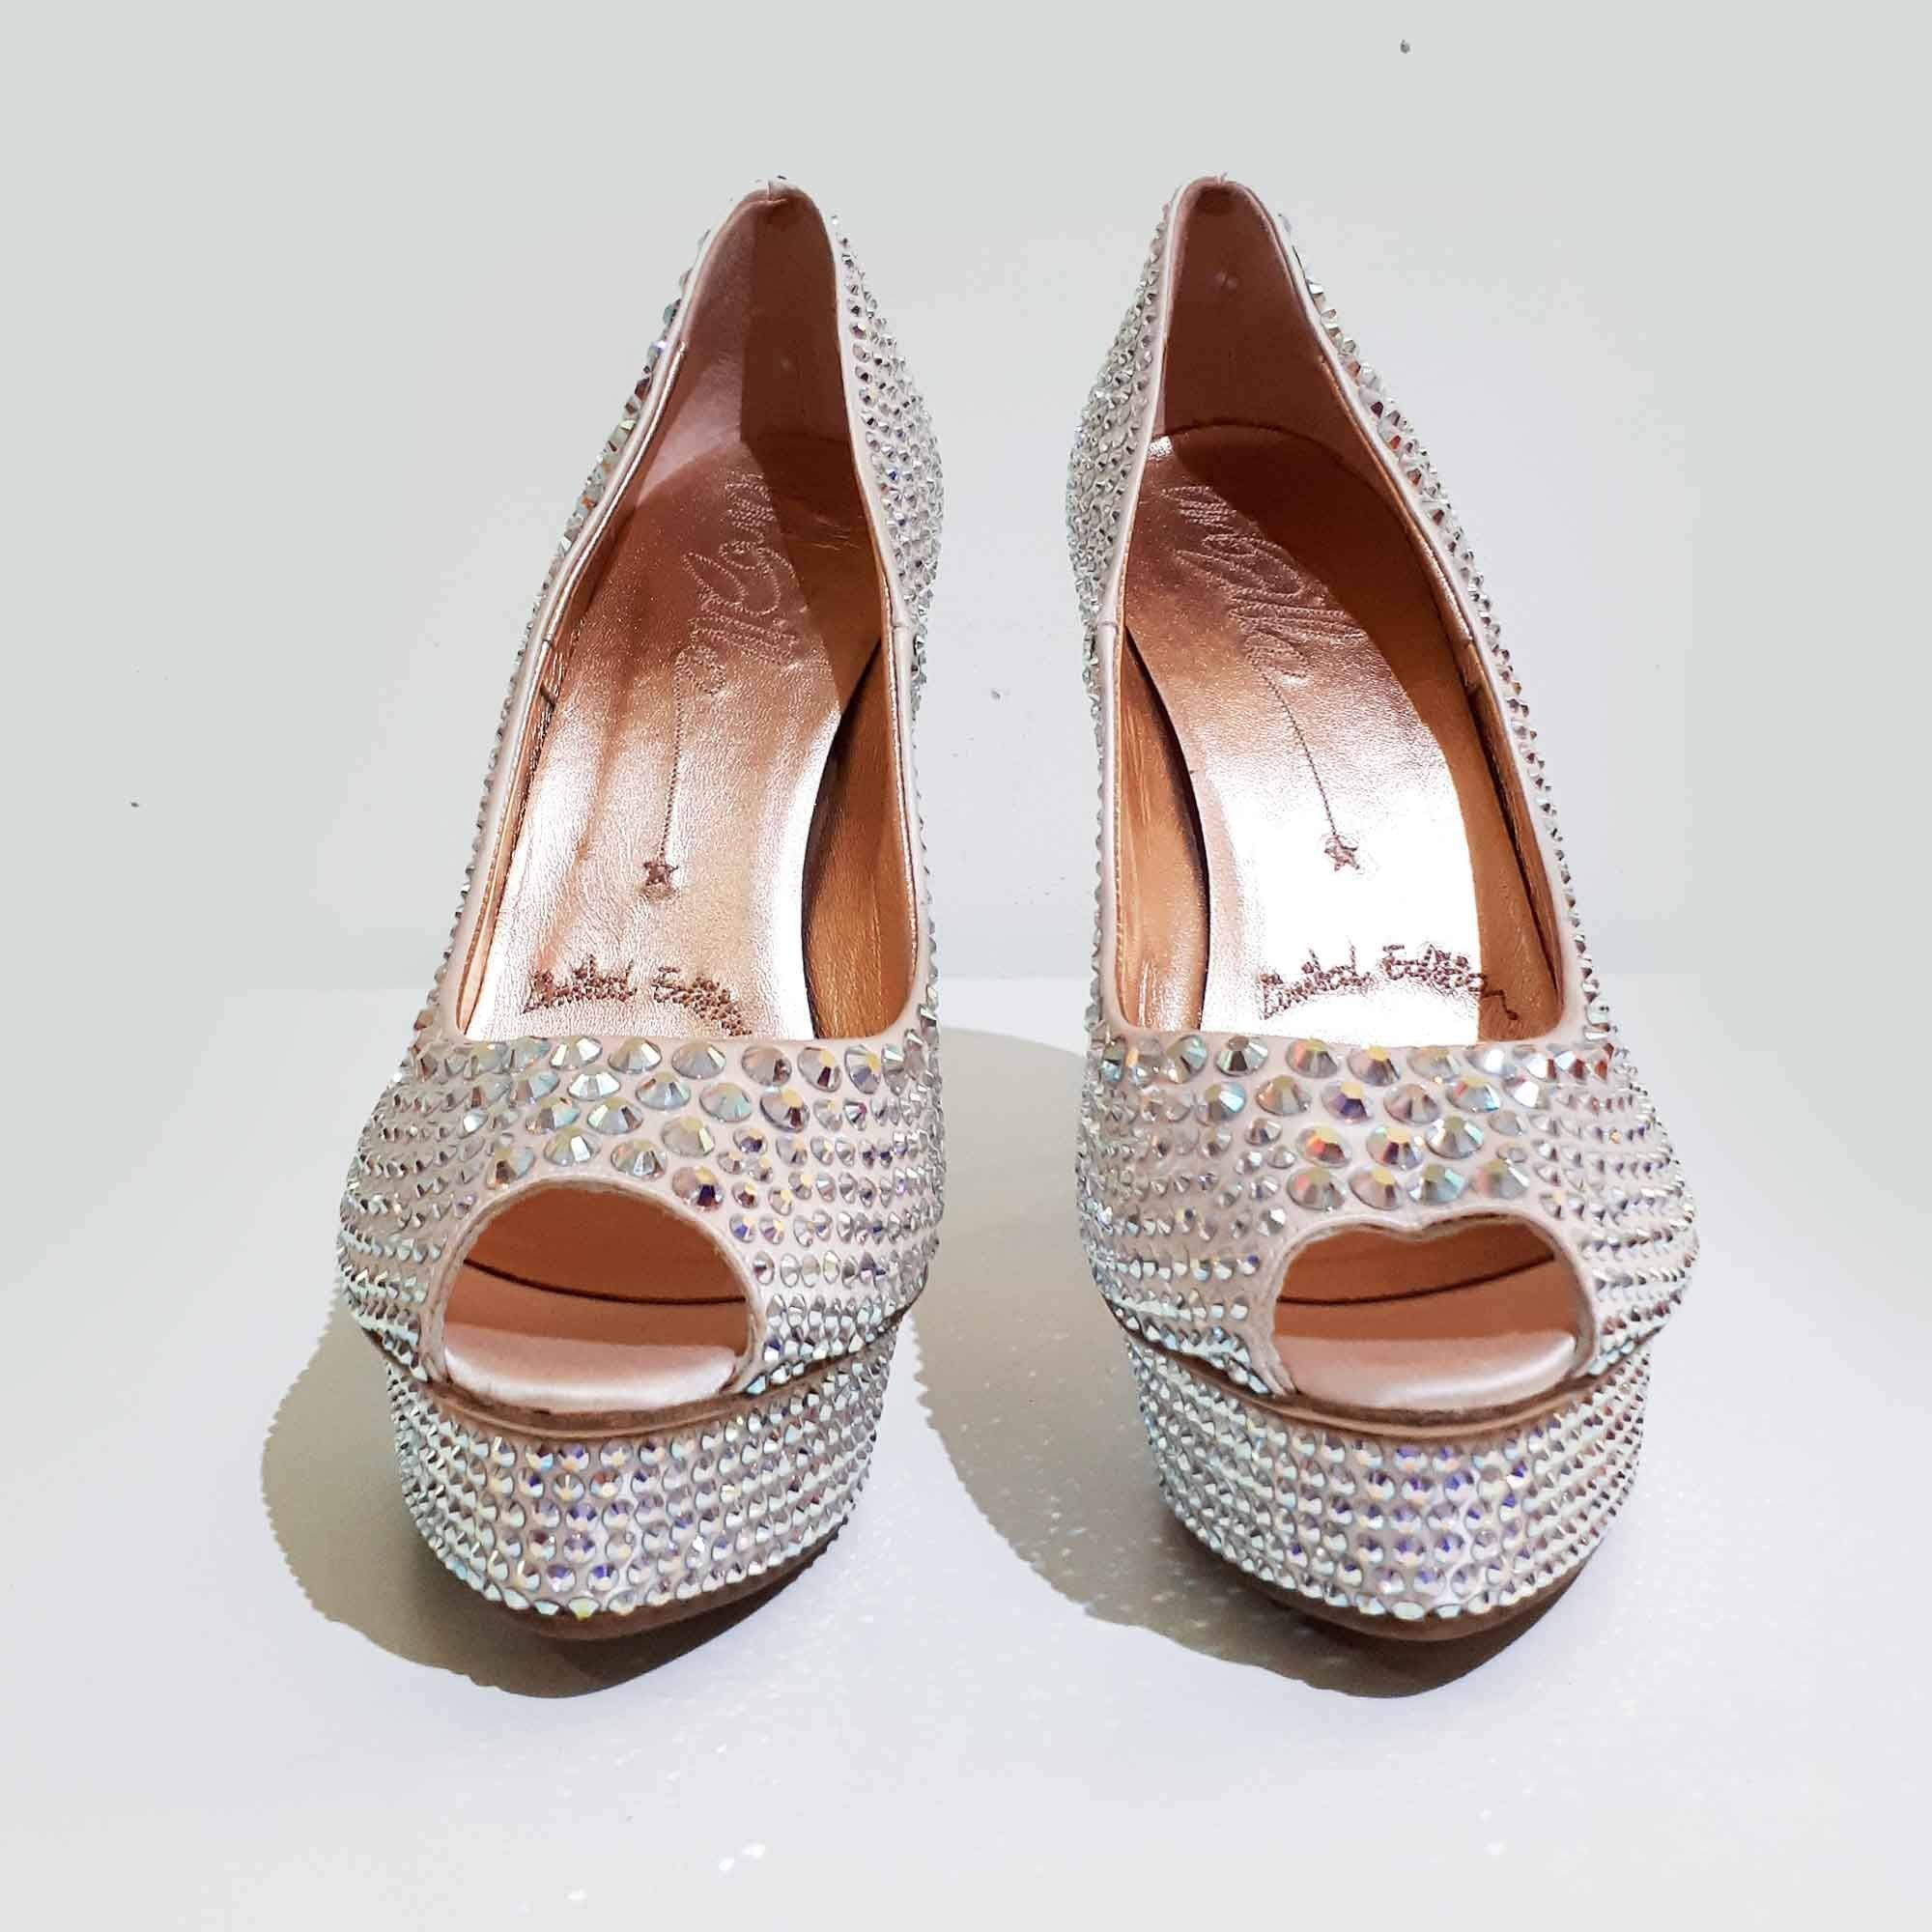 Le Silla Crystal Studded Platform Peep Toe Pumps